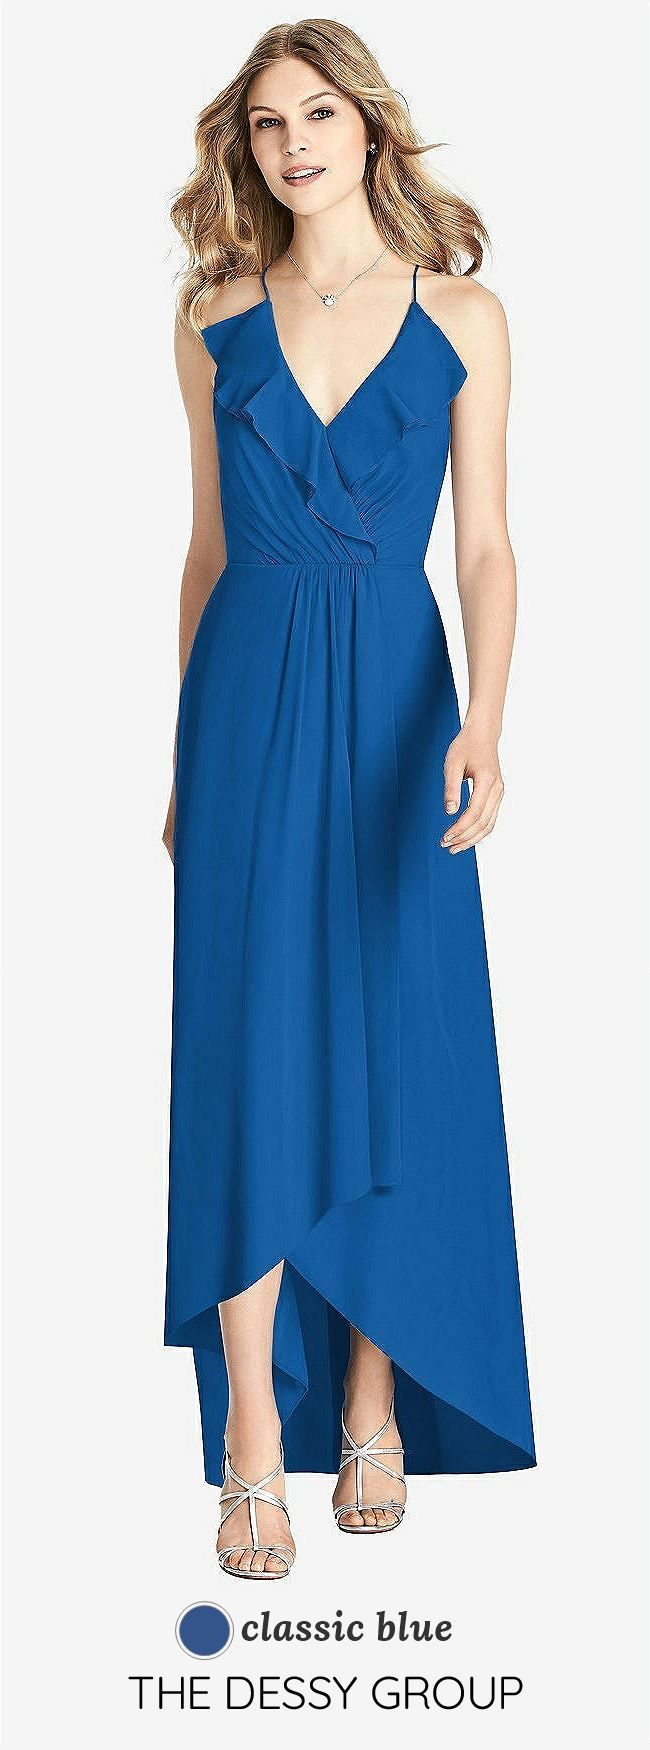 Mismatched Royal Bridesmaid Dresses In 2020 Blue Bridesmaids Royal Blue Bridesmaid Dress Long Royal Blue Bridesmaid Dresses